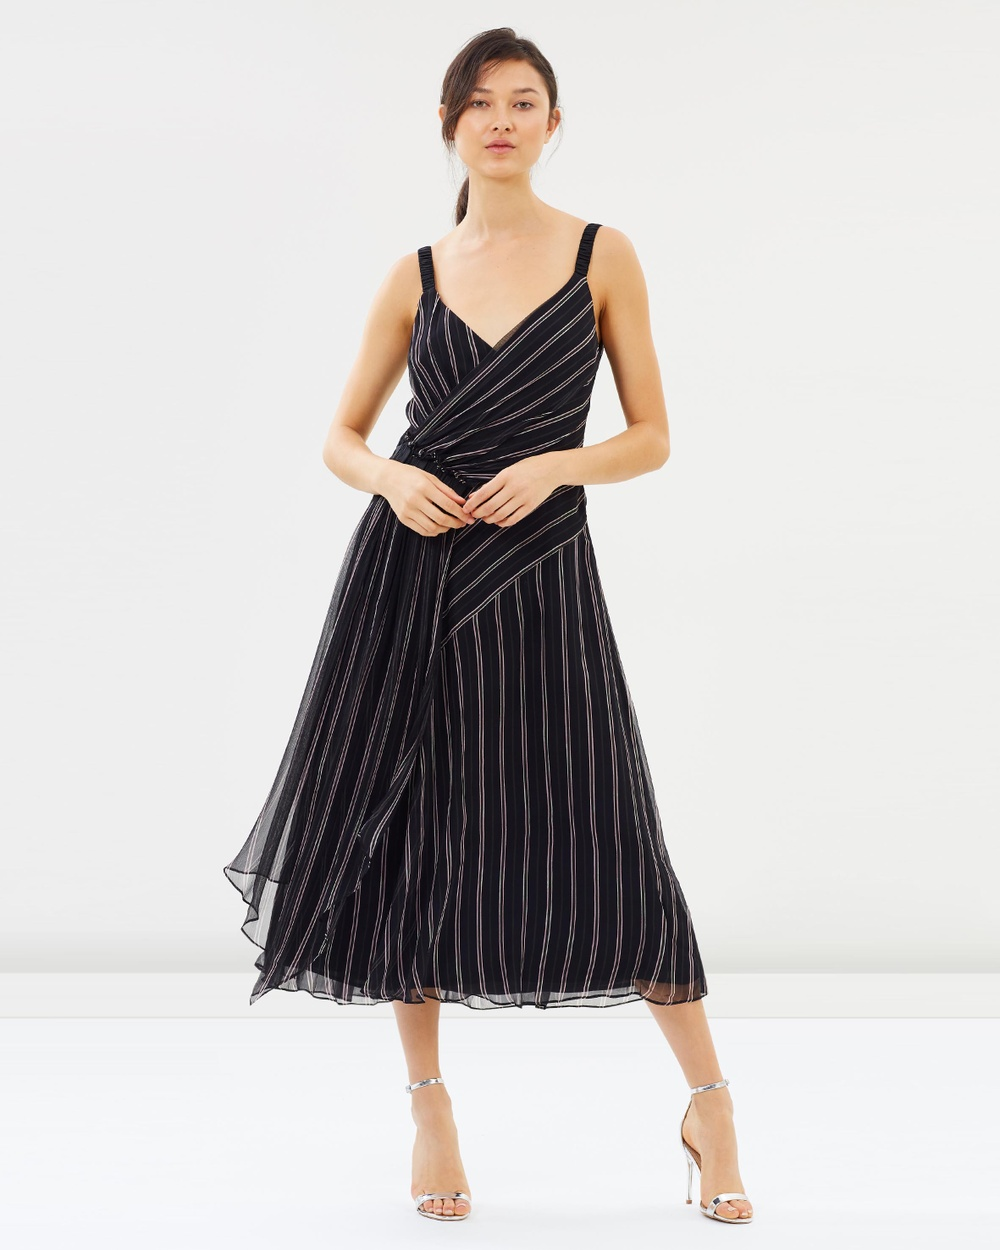 GREY Jason Wu Black Multi Painterly Stripe Print Ruched Dress